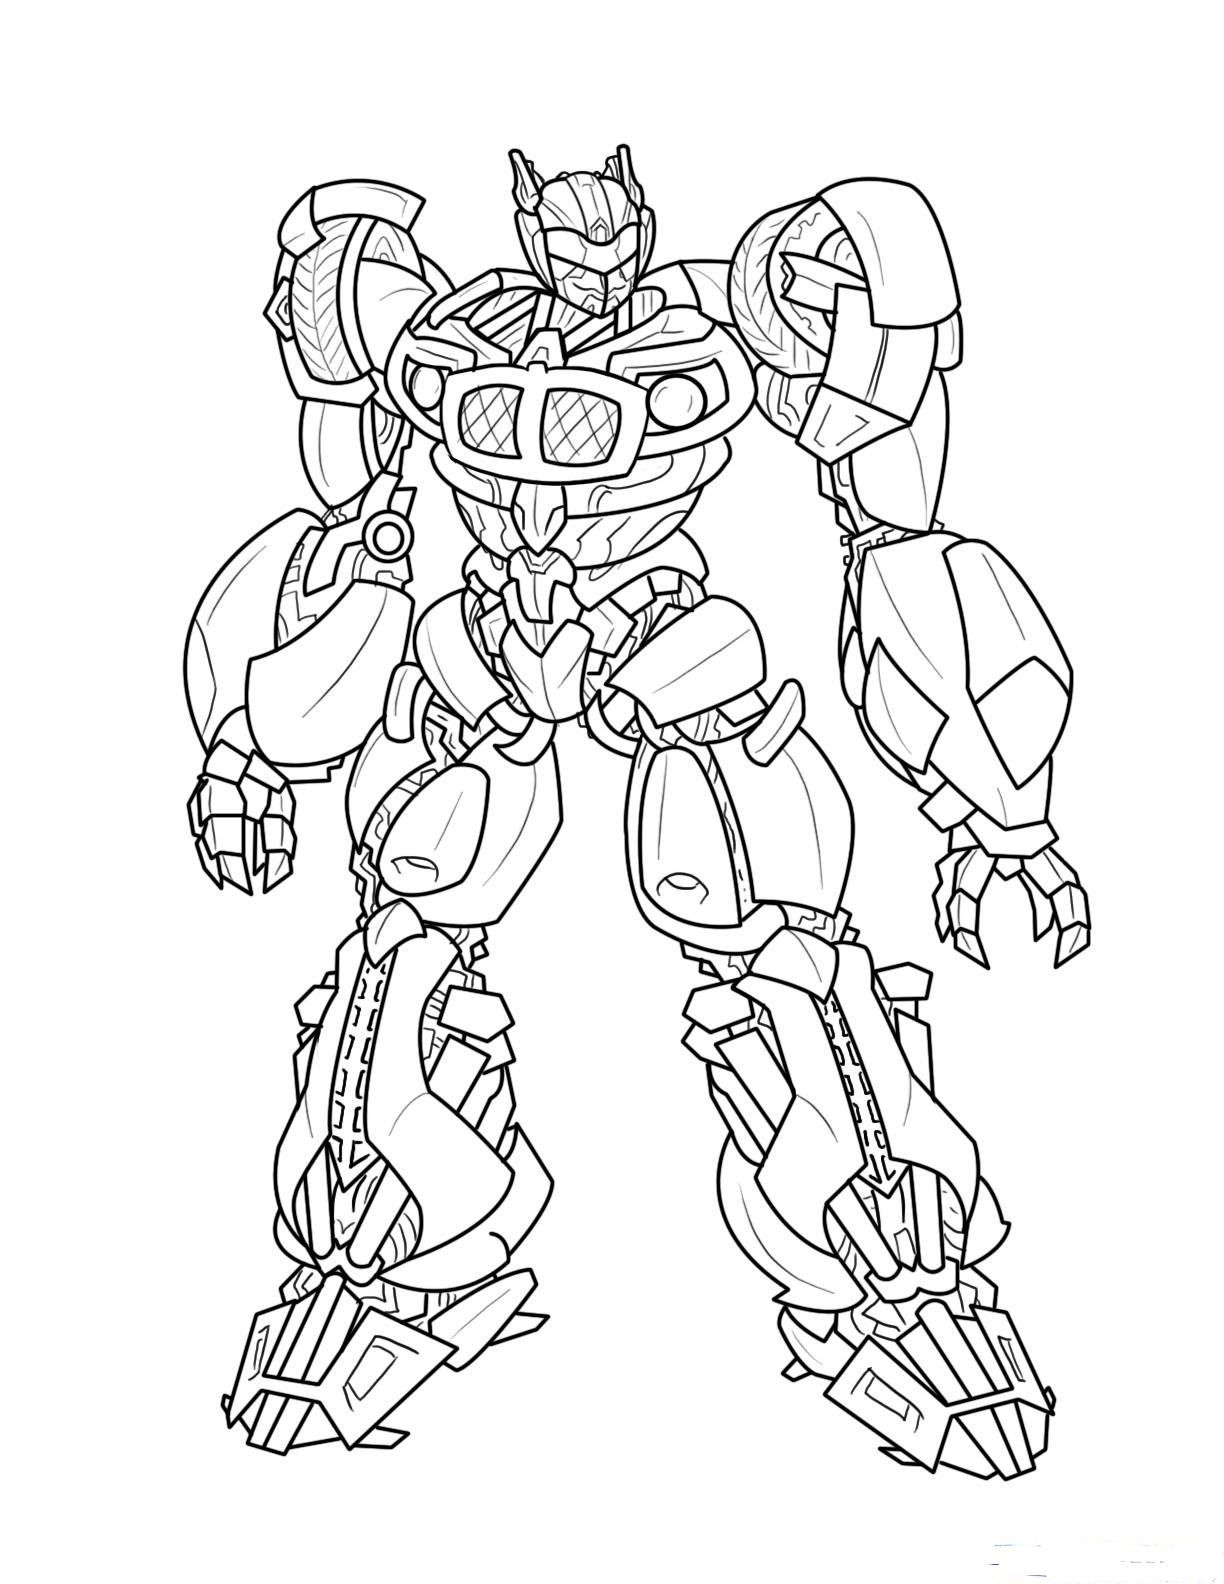 Coloring pages printable transformers coloring pages to print